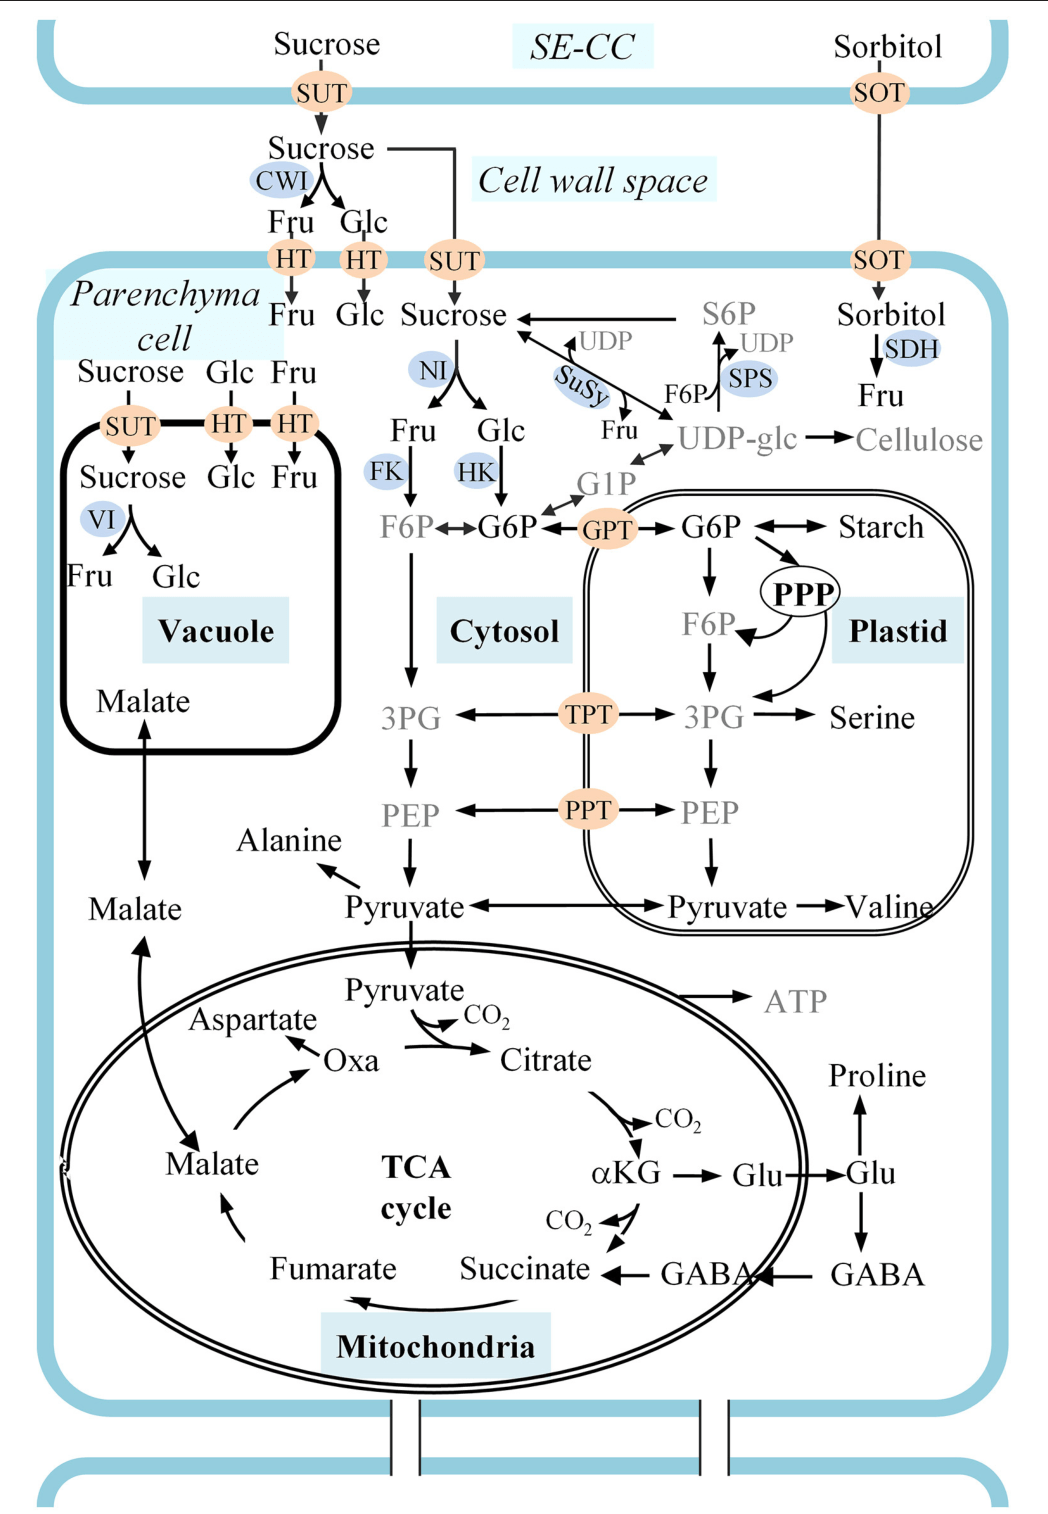 hight resolution of figure 1 a schematic representation of carbon metabolism in developing apple fruit sorbitol and